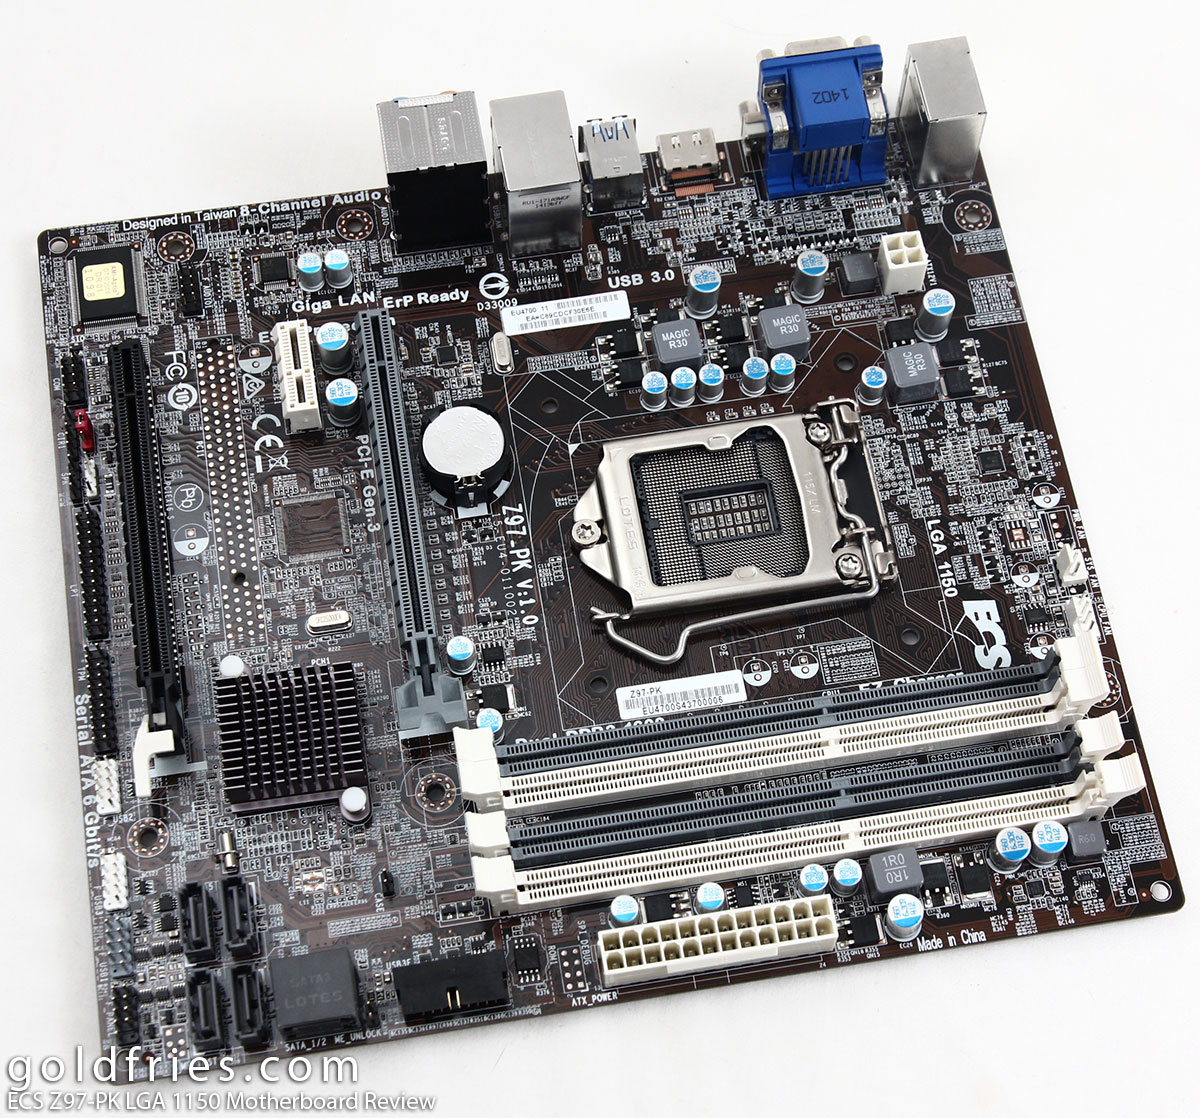 ECS Z97-PK LGA 1150 Motherboard Review